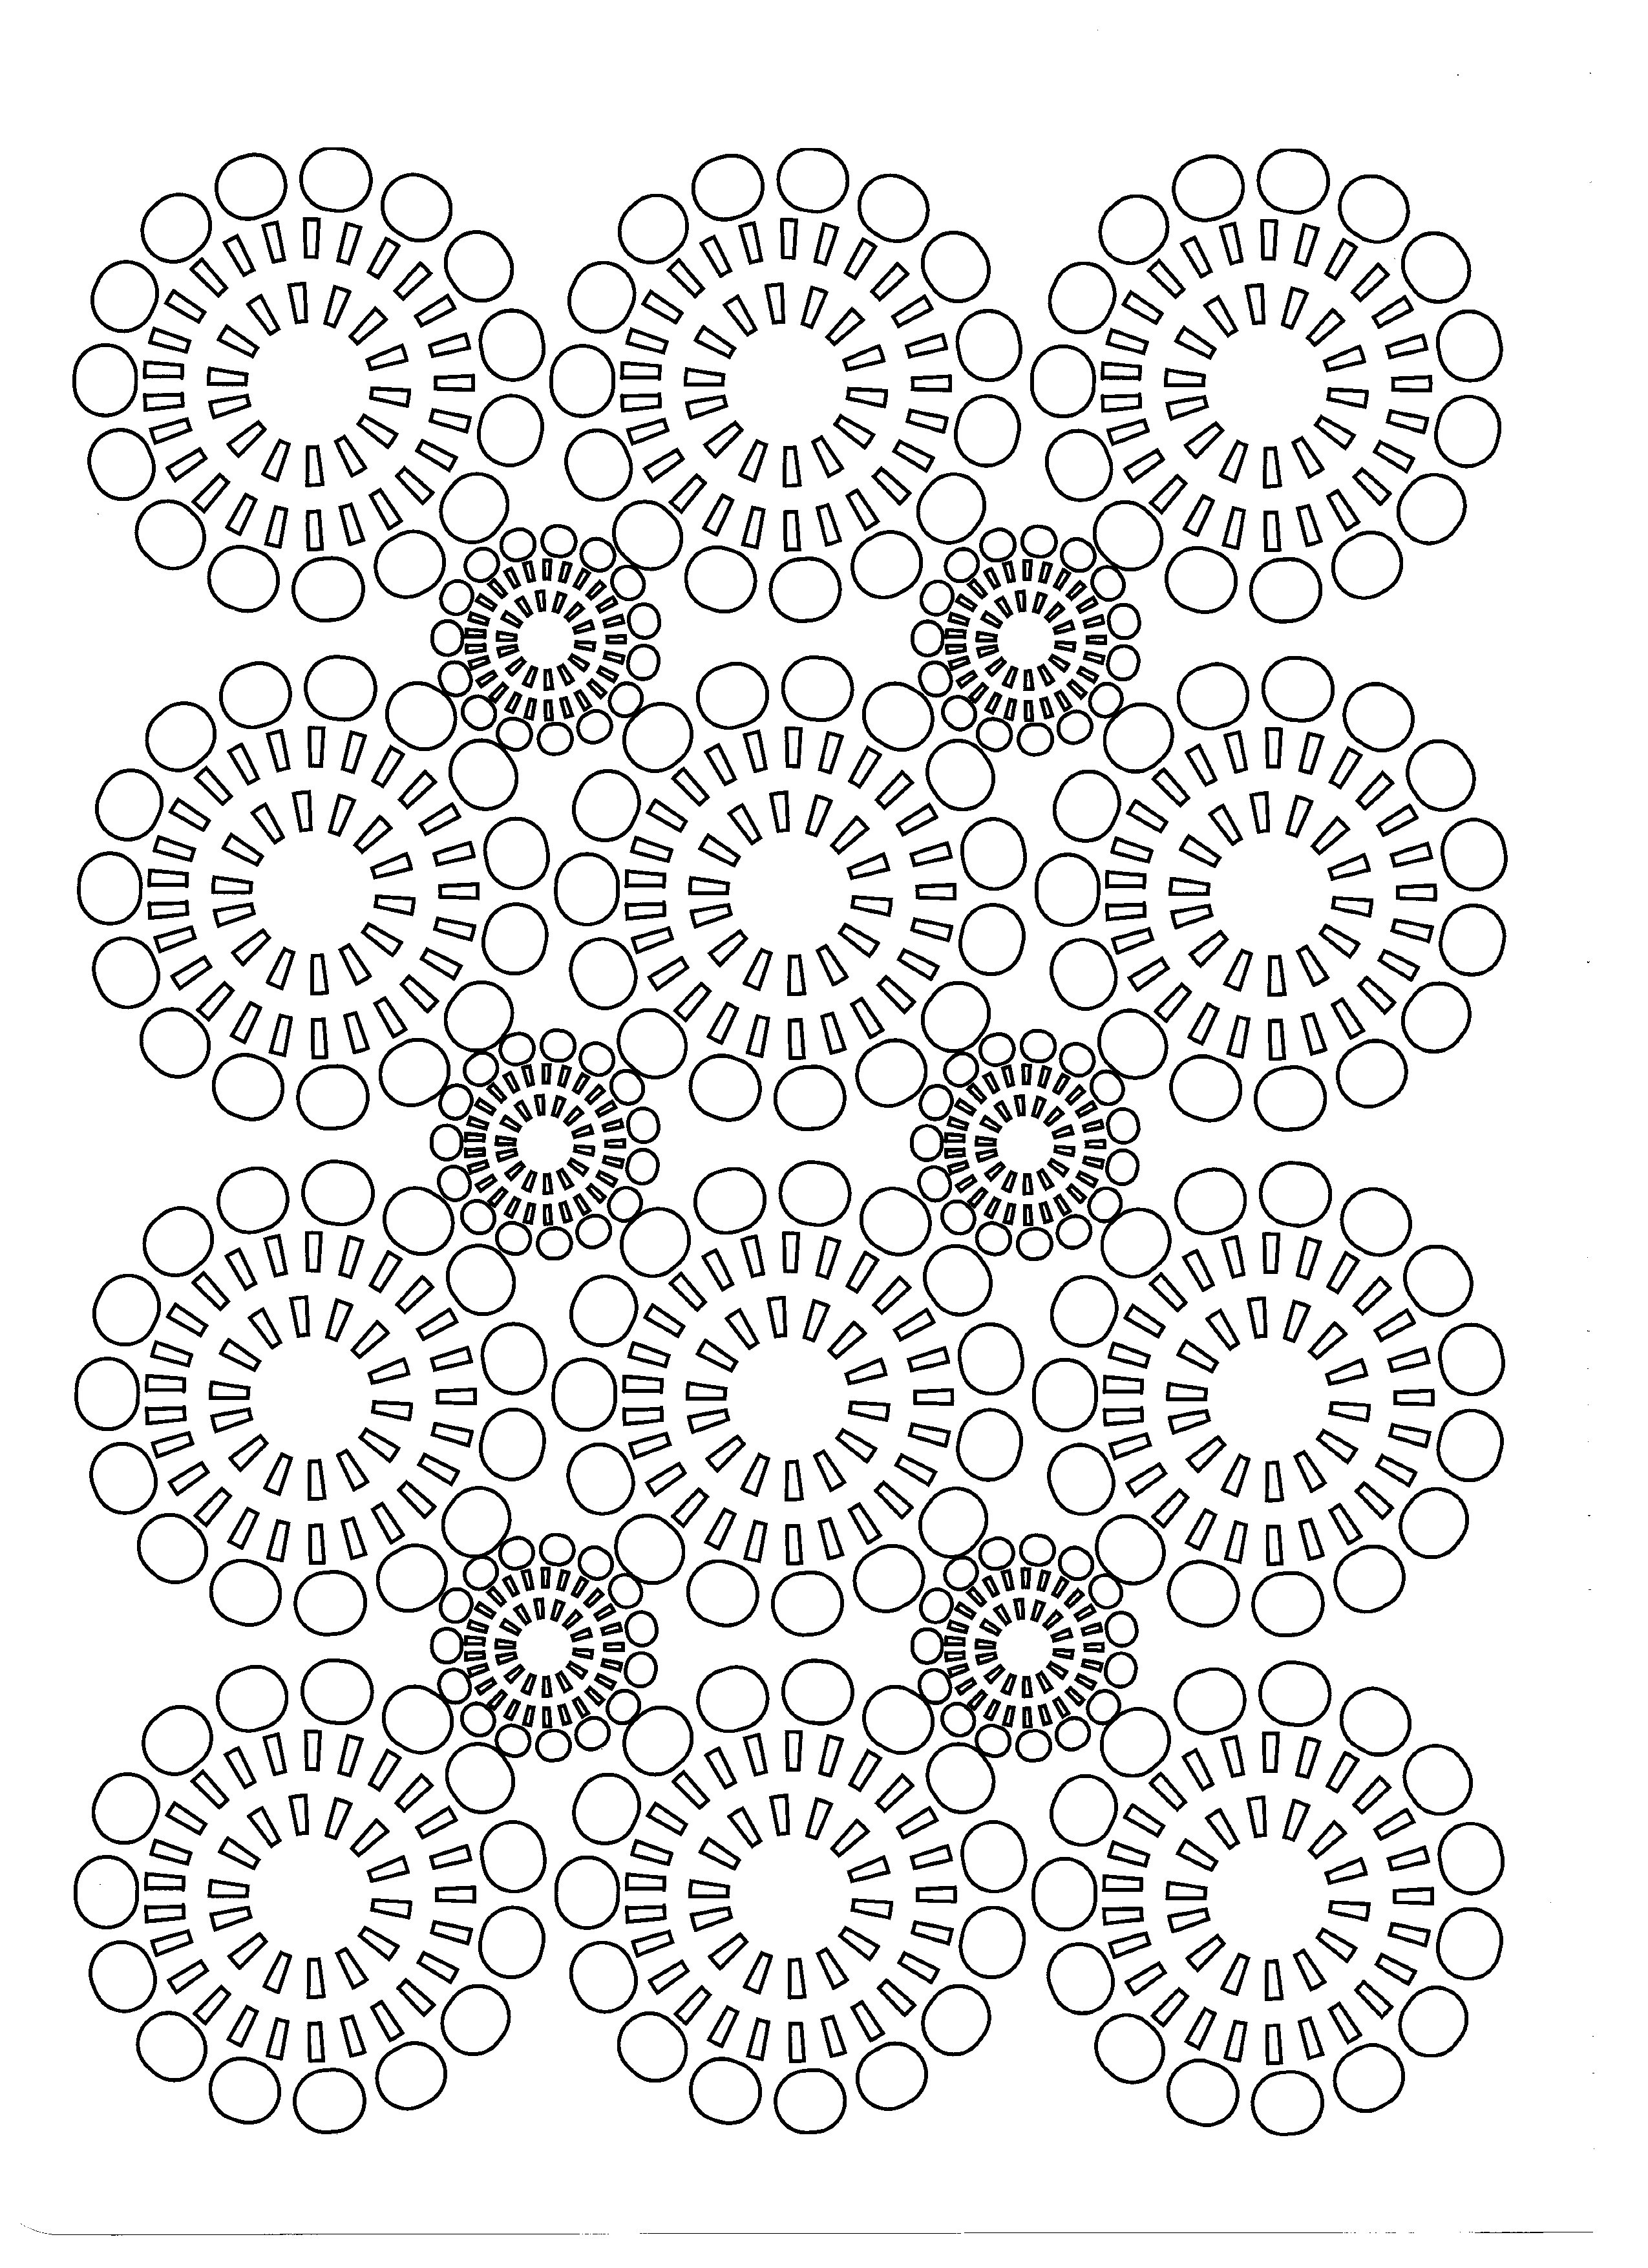 Flowers in regular circles